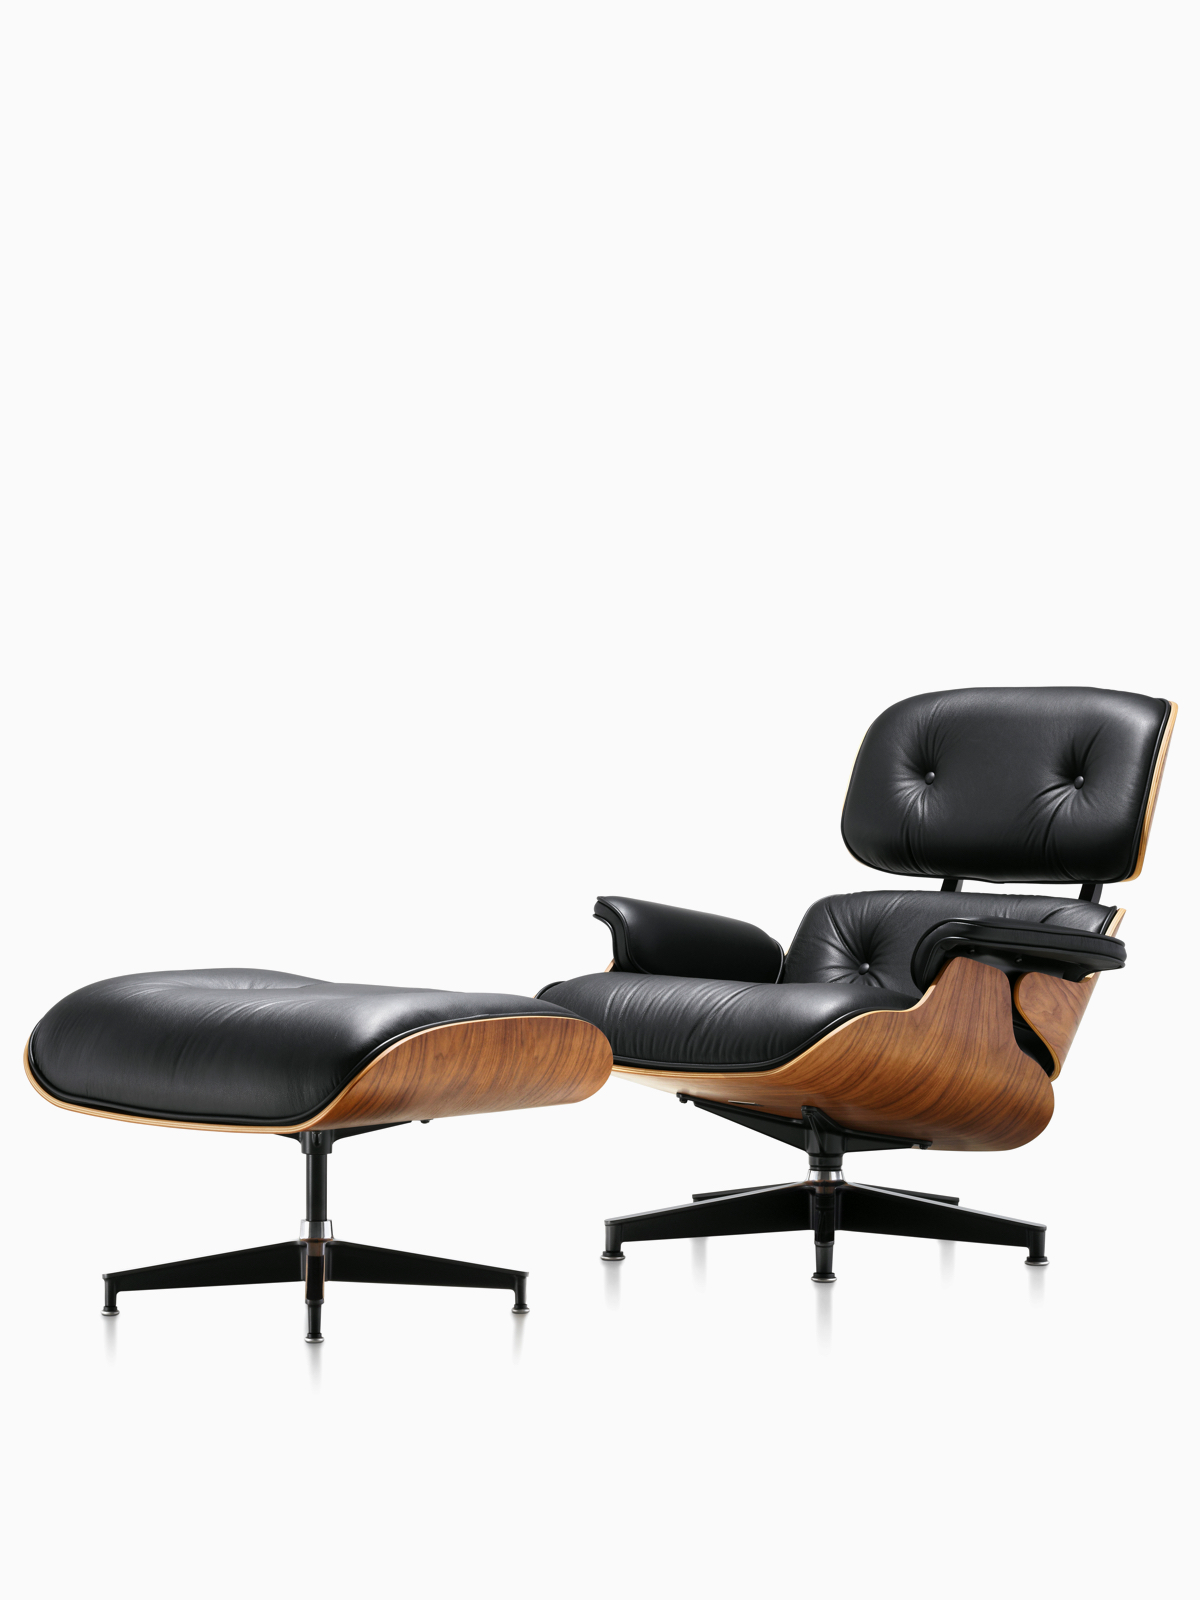 Eanes Chair Eames Lounge And Ottoman Lounge Chair Herman Miller